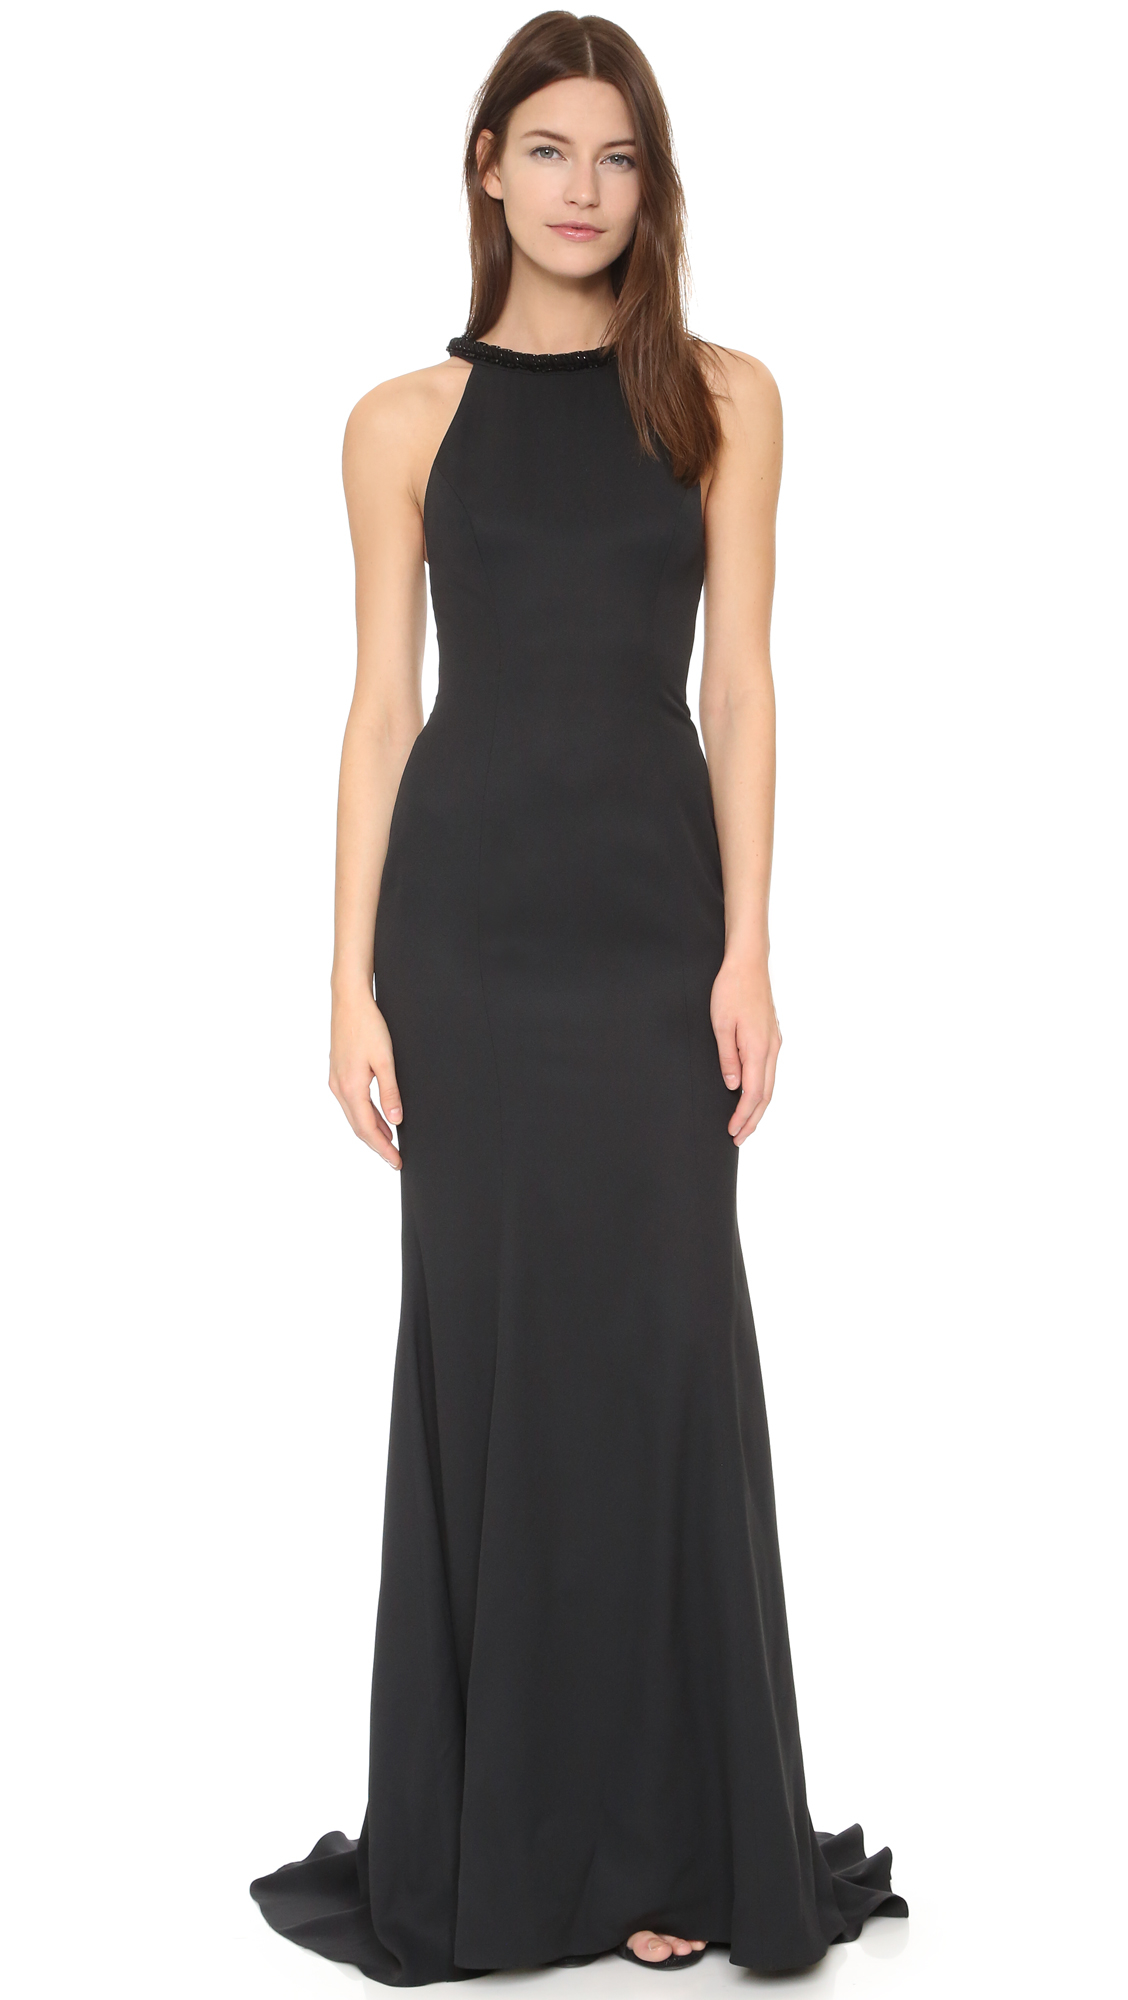 Monique Lhuillier Black Gown_Black Dresses_dressesss